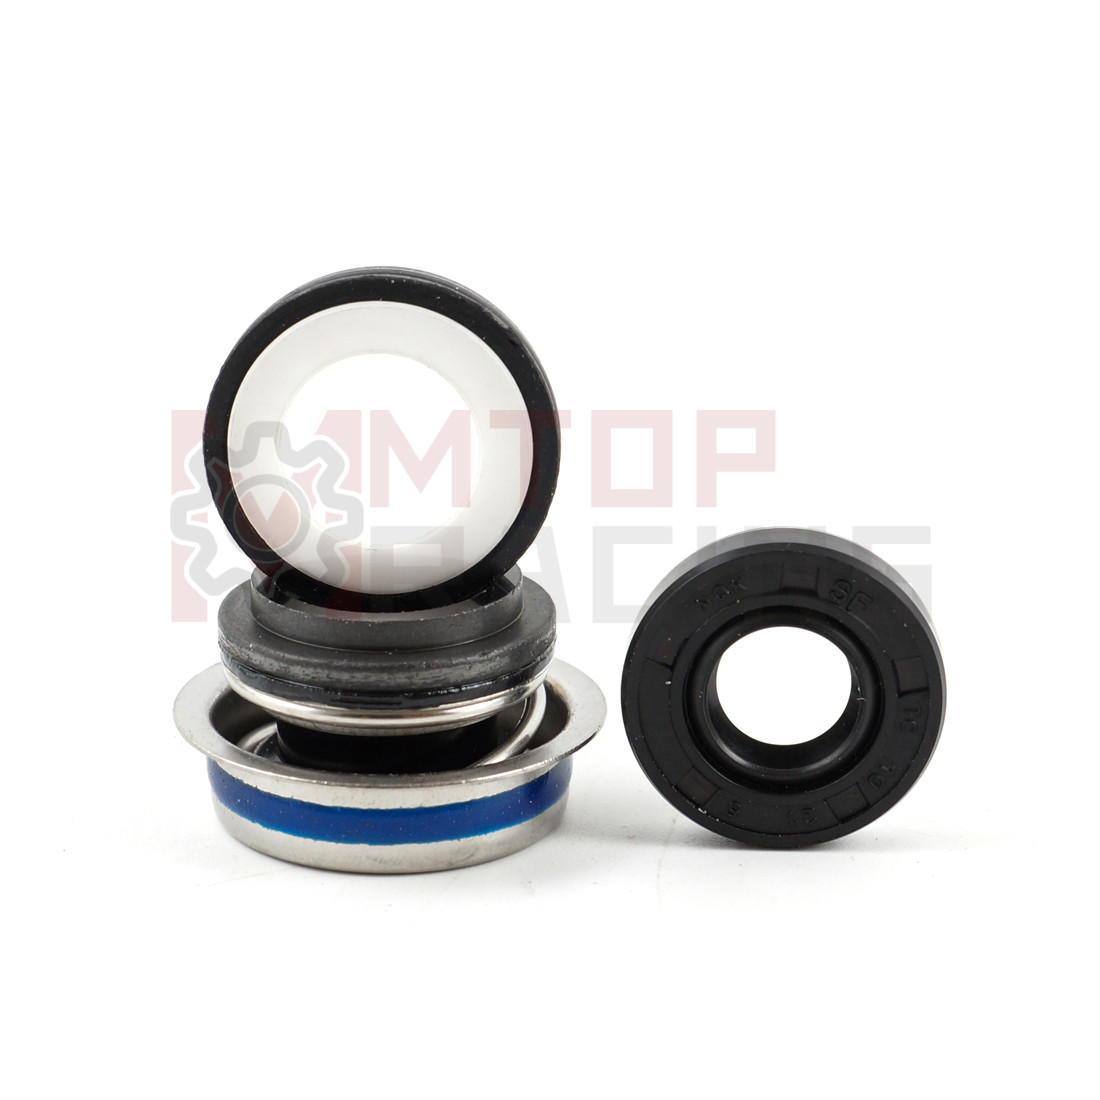 Water Pump Mechanical Seal Set For <font><b>Suzuki</b></font> DL1000 V-Strom 2002-2016 <font><b>2003</b></font> 04 05 06 07 08 09 2010 <font><b>SV1000</b></font> (<font><b>2003</b></font> 2004 2005 2006 <font><b>2007</b></font>) image